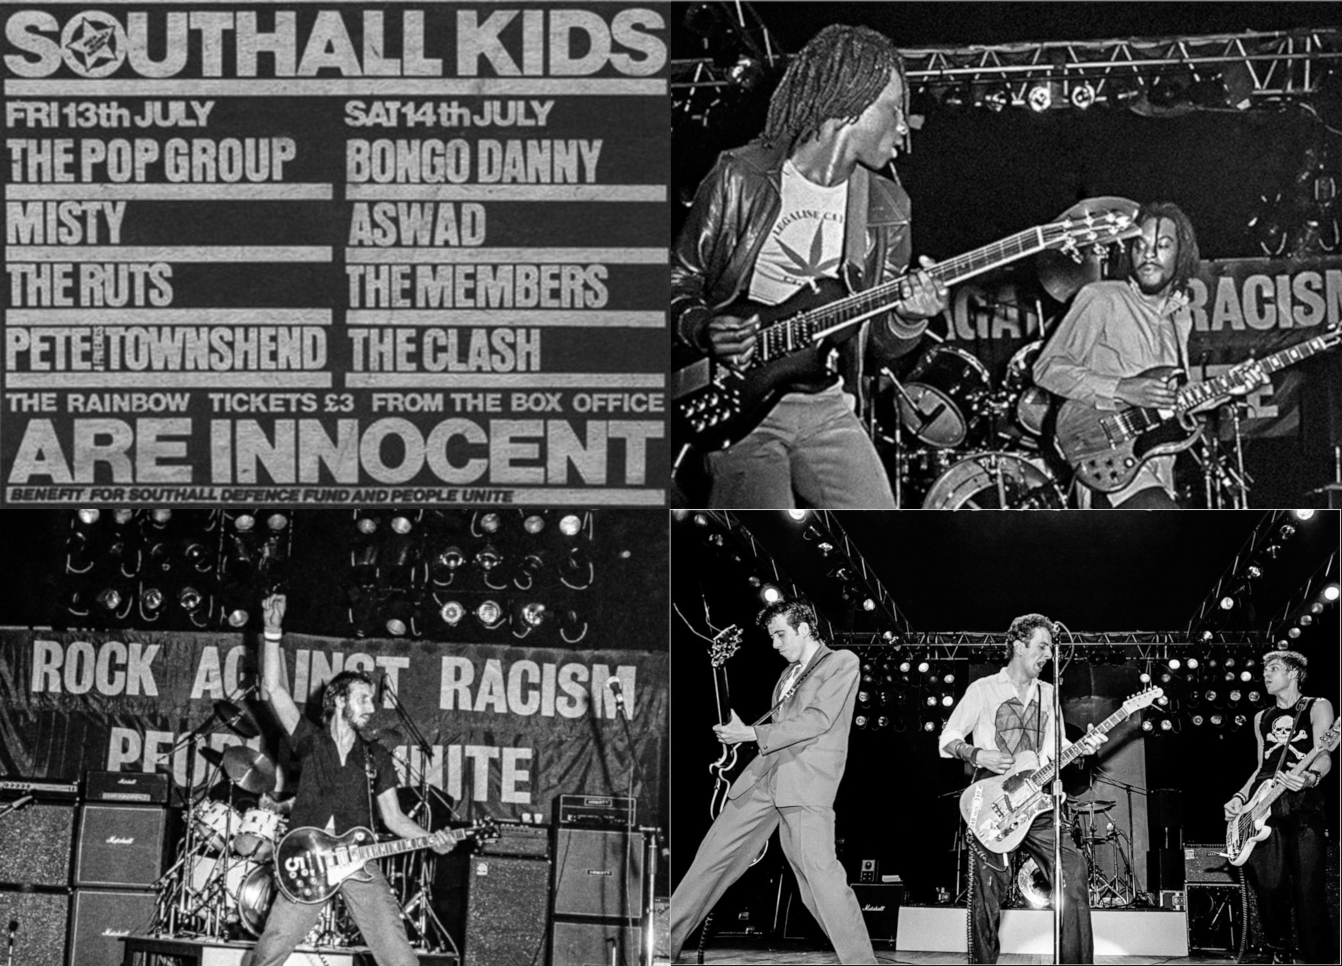 Shouthall Kids Are Innocent: ASWAD, Pete Townshend, The Clash (Ιούλιος 1979)